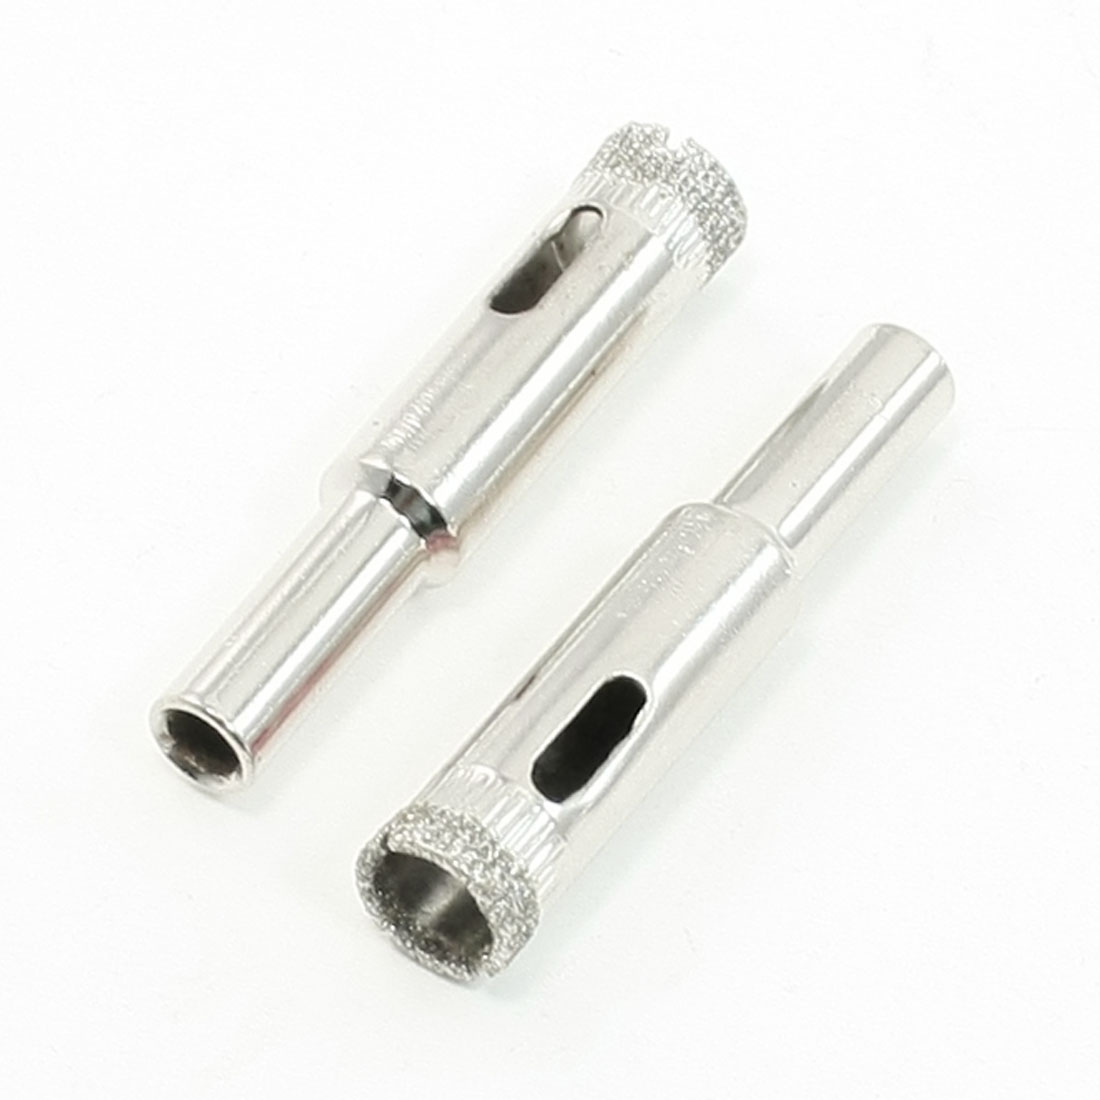 6.5mm Dia Shaft 10mm Cutting Dia Tile Glass Hole Saw 2 PCS